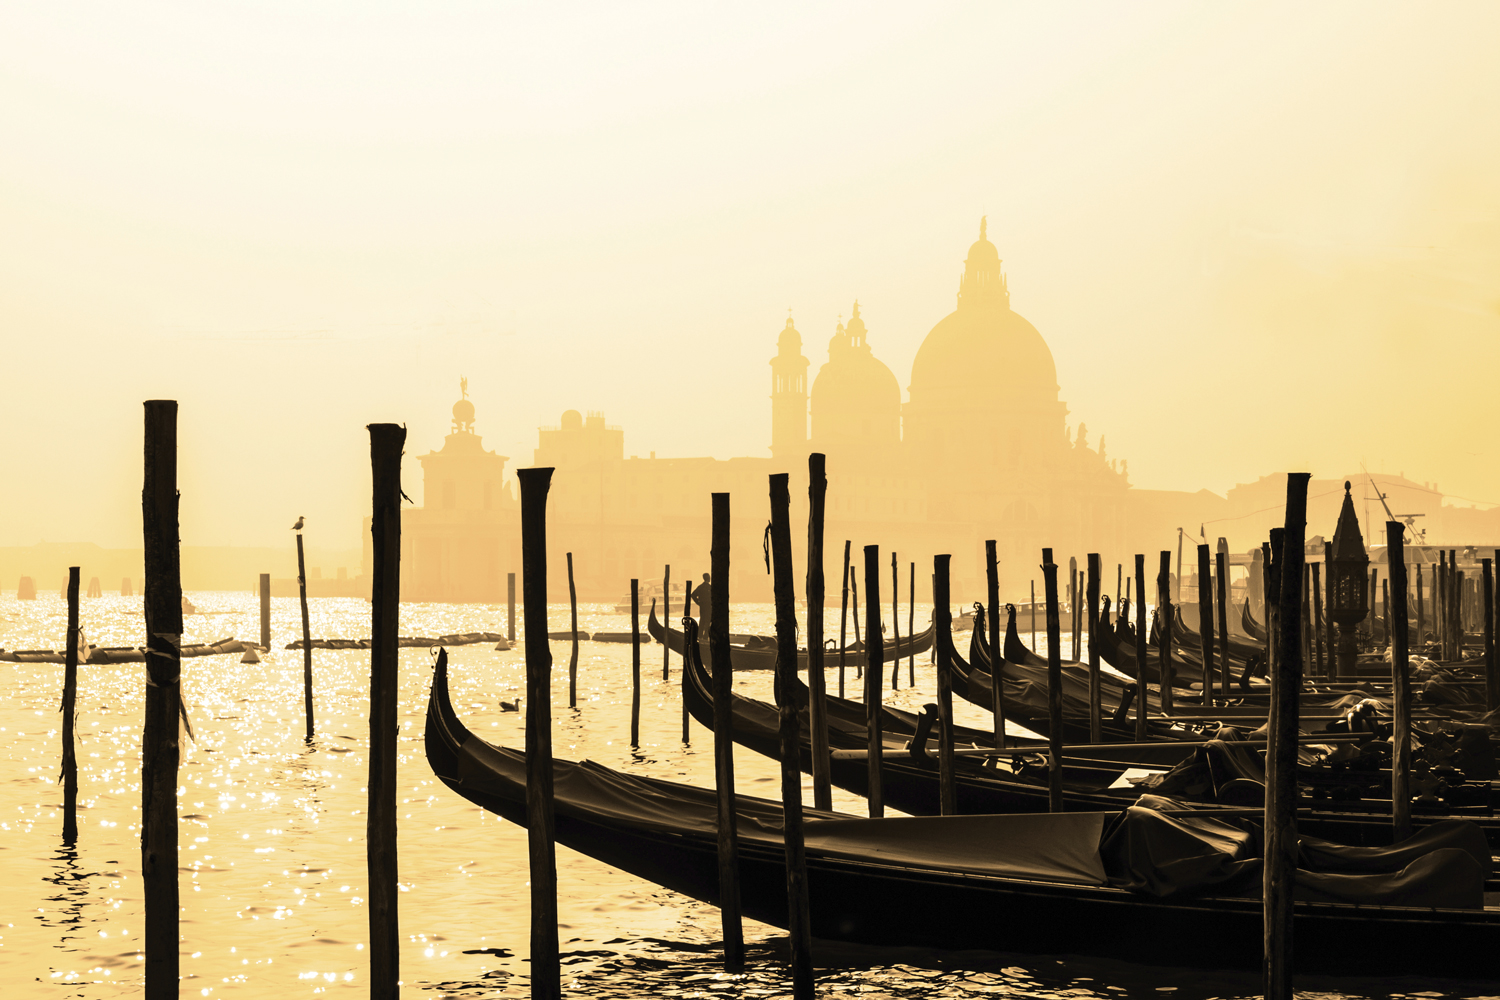 http://extranet.jetlinetravel.info/express-images/Express_Europe-Italy-Venice-Generic6.jpg